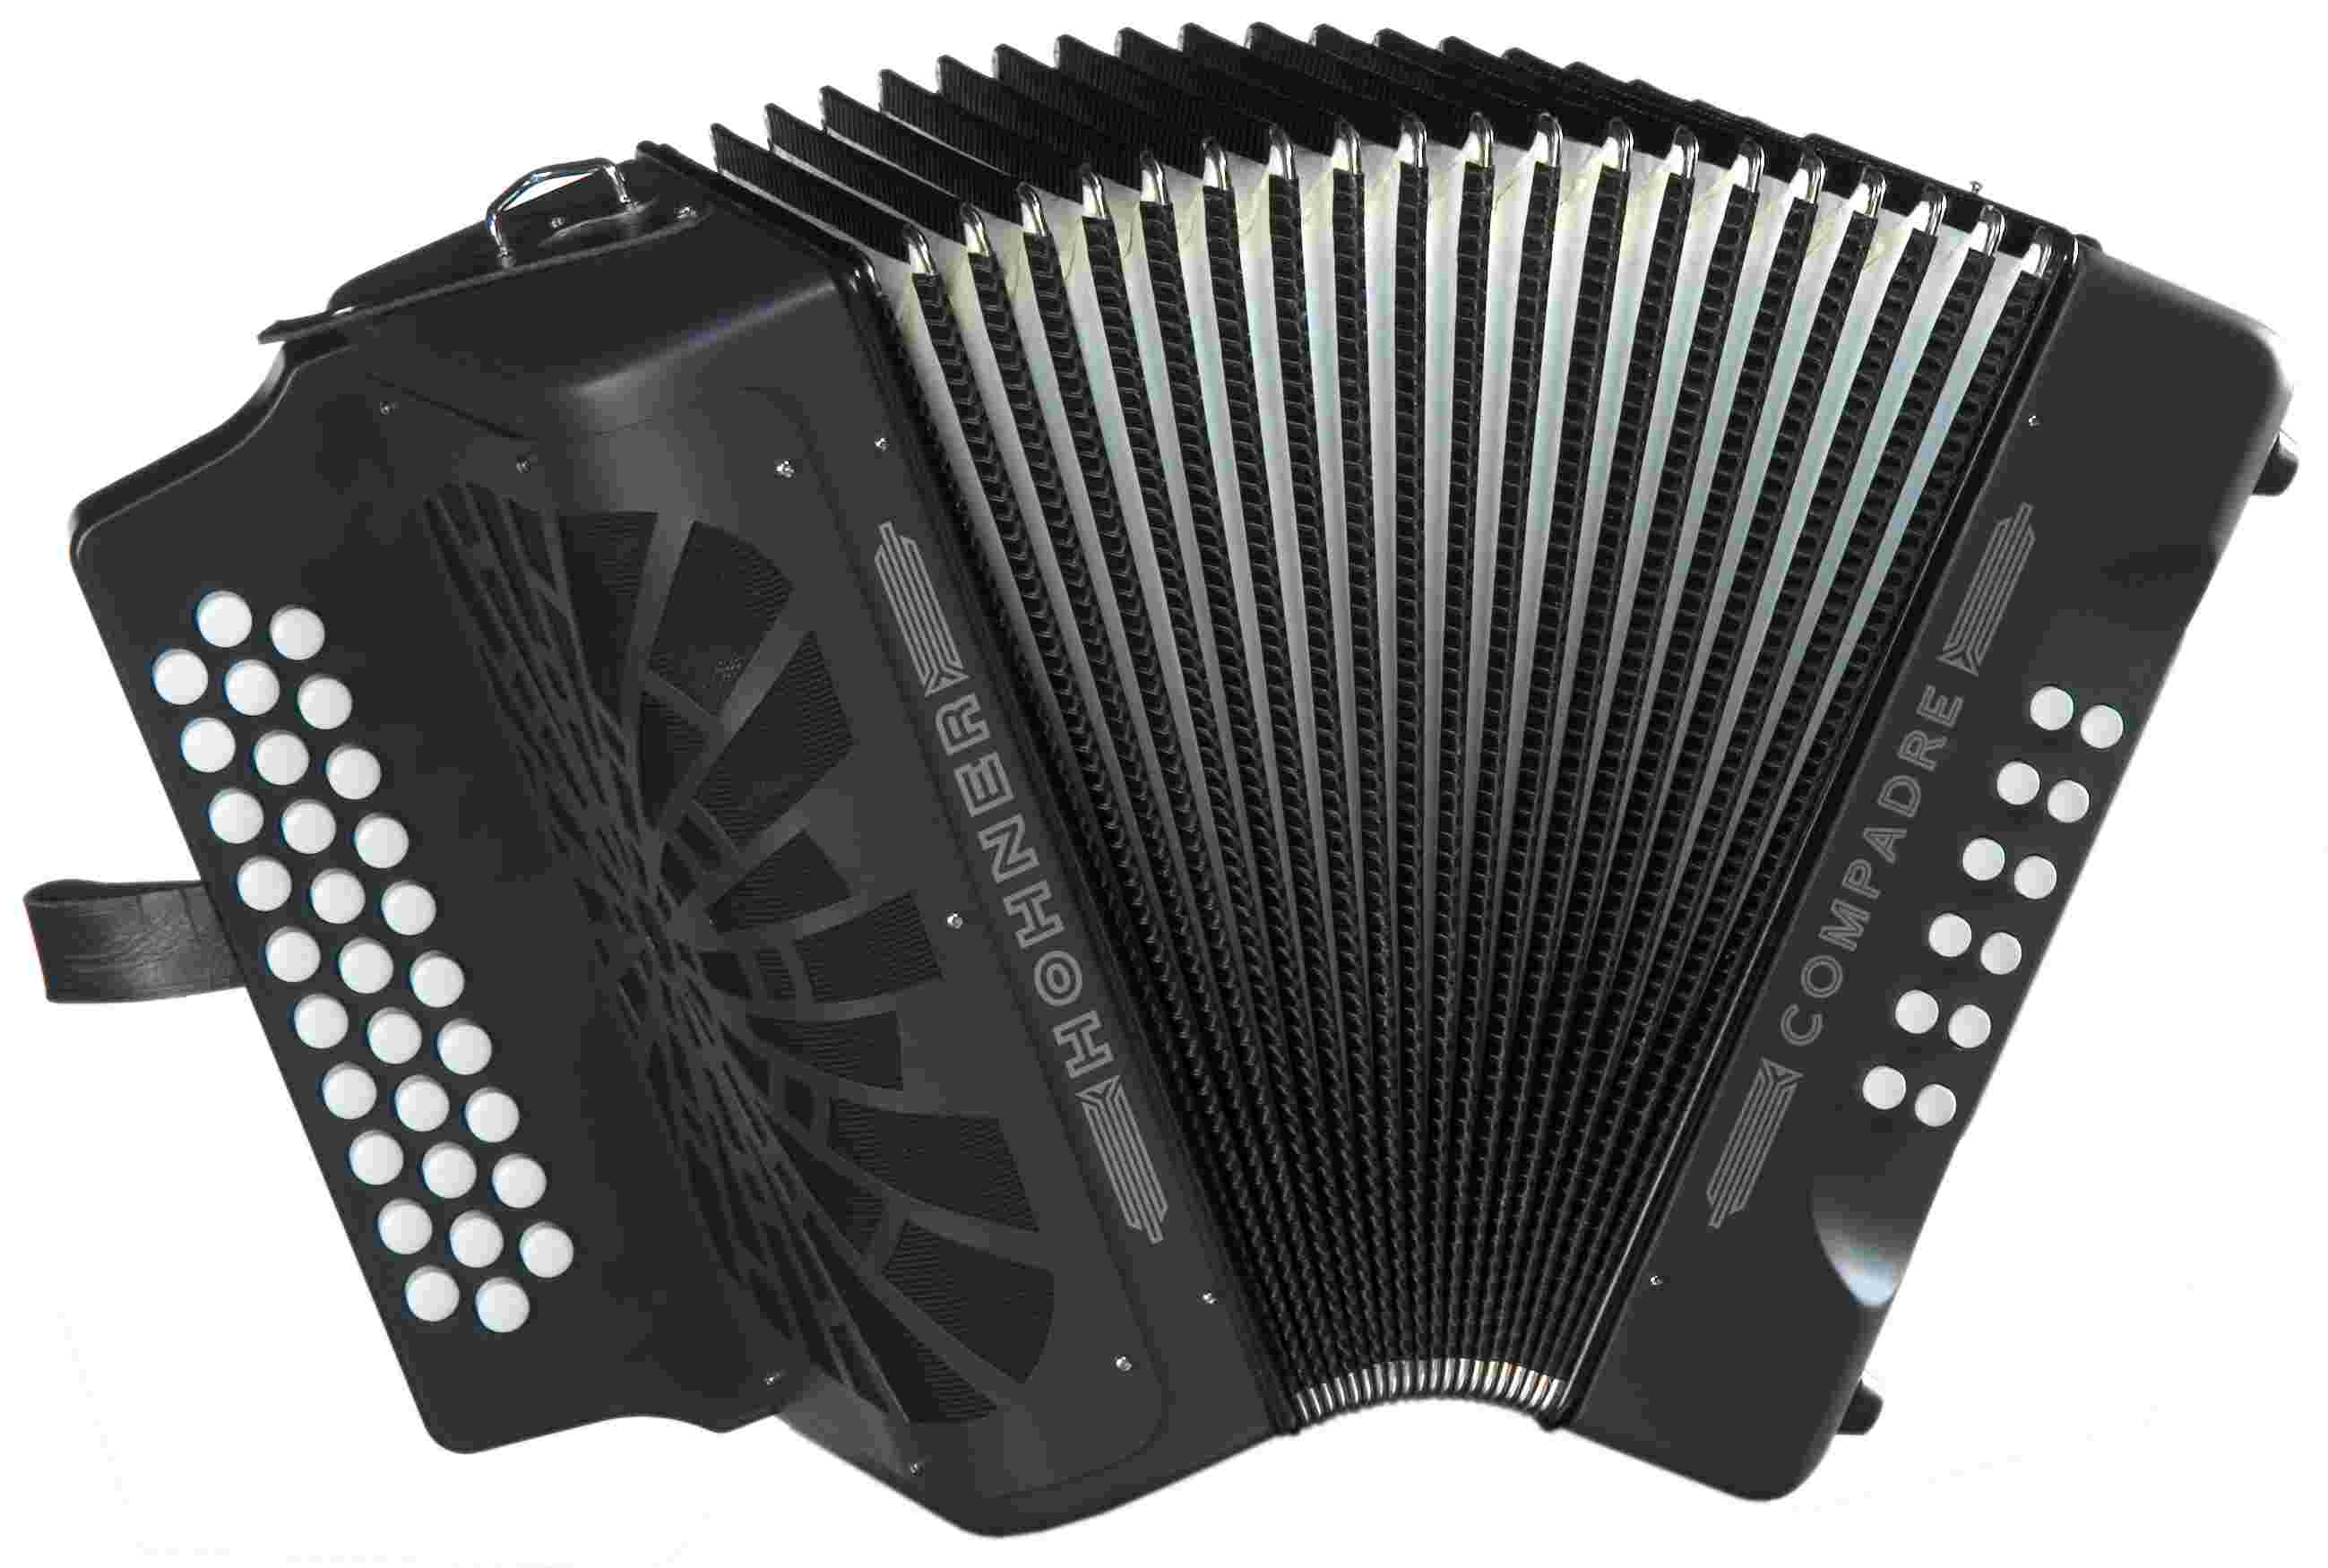 Accordion Repair Supplies http://www.cassellsmusic.com/products/Hohner-Compadre-Diatonic-Button-Accordion-150586.html